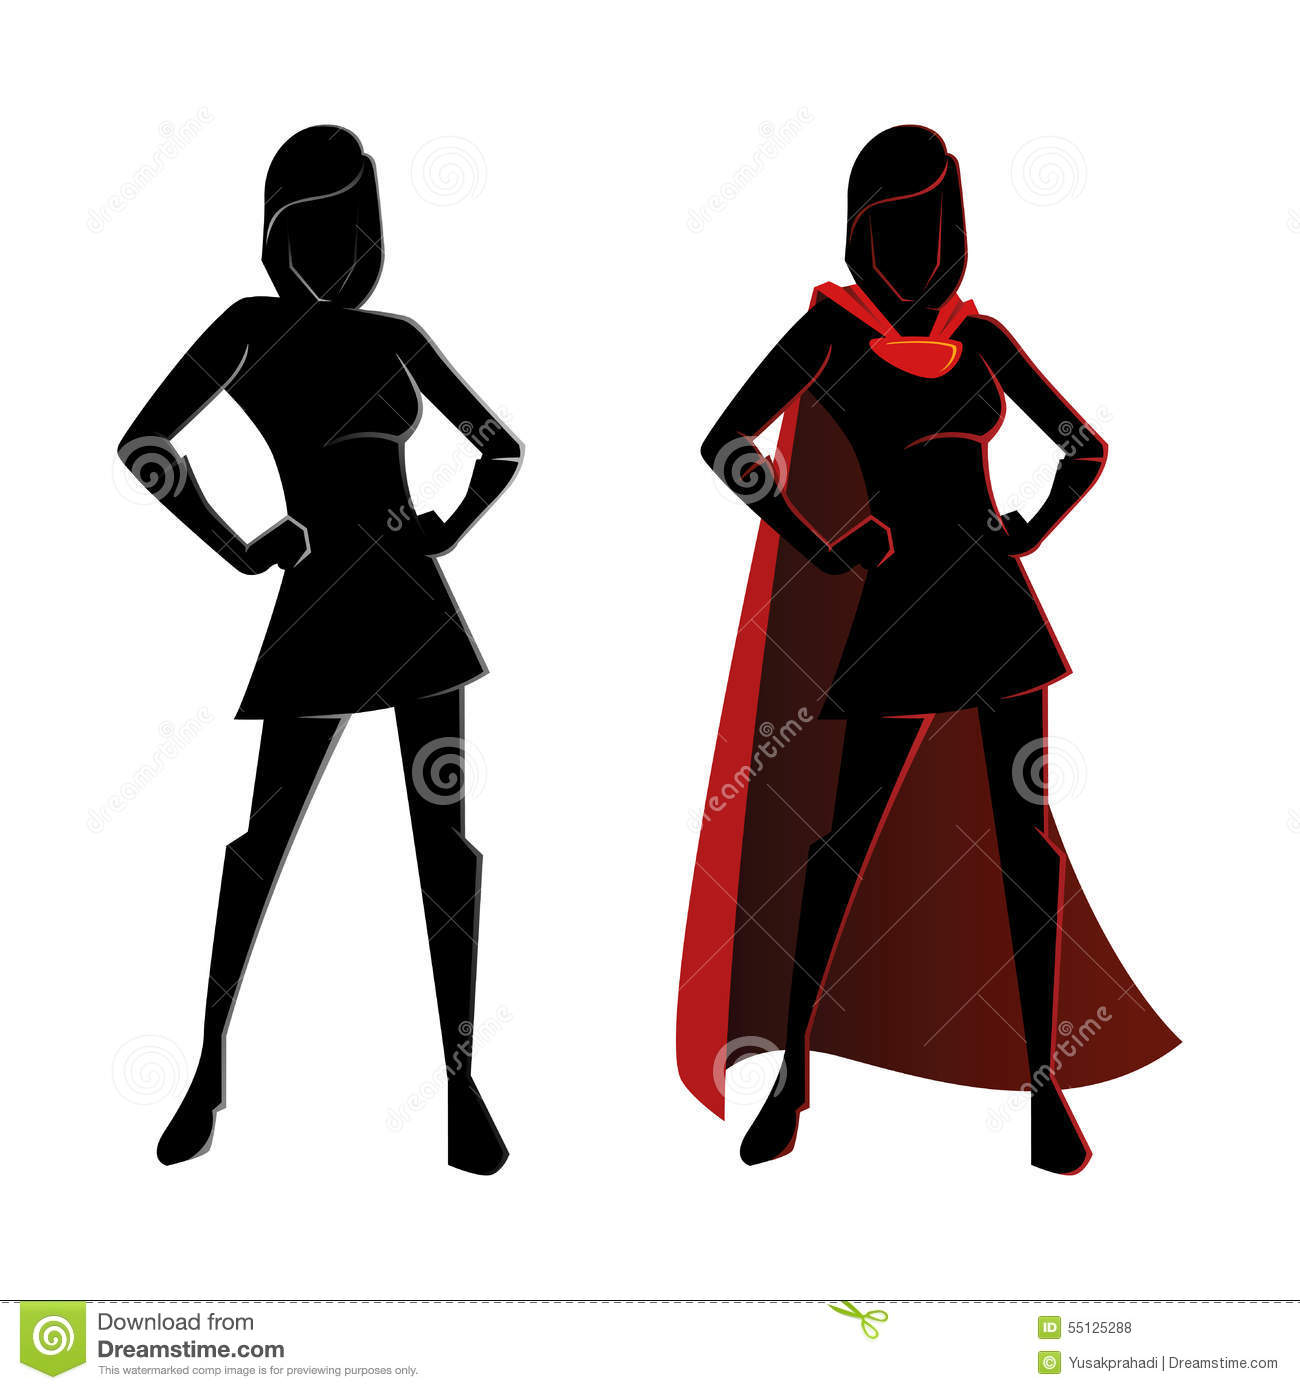 Female Superhero Silhouette Stock Vector - Image: 55125288